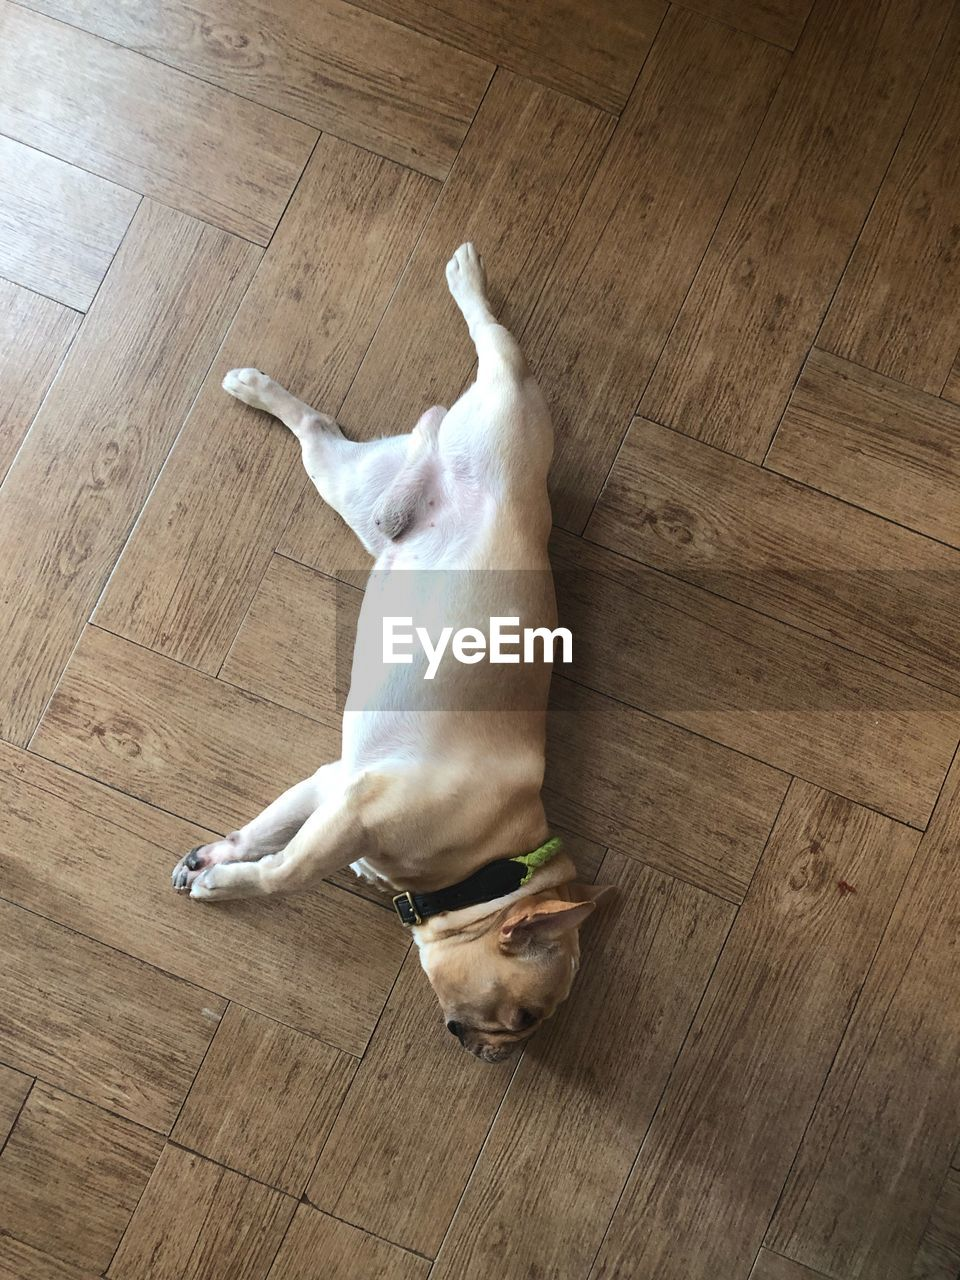 domestic, pets, mammal, domestic animals, flooring, one animal, animal themes, animal, hardwood floor, indoors, wood, dog, canine, high angle view, home interior, relaxation, no people, vertebrate, lying down, wood - material, small